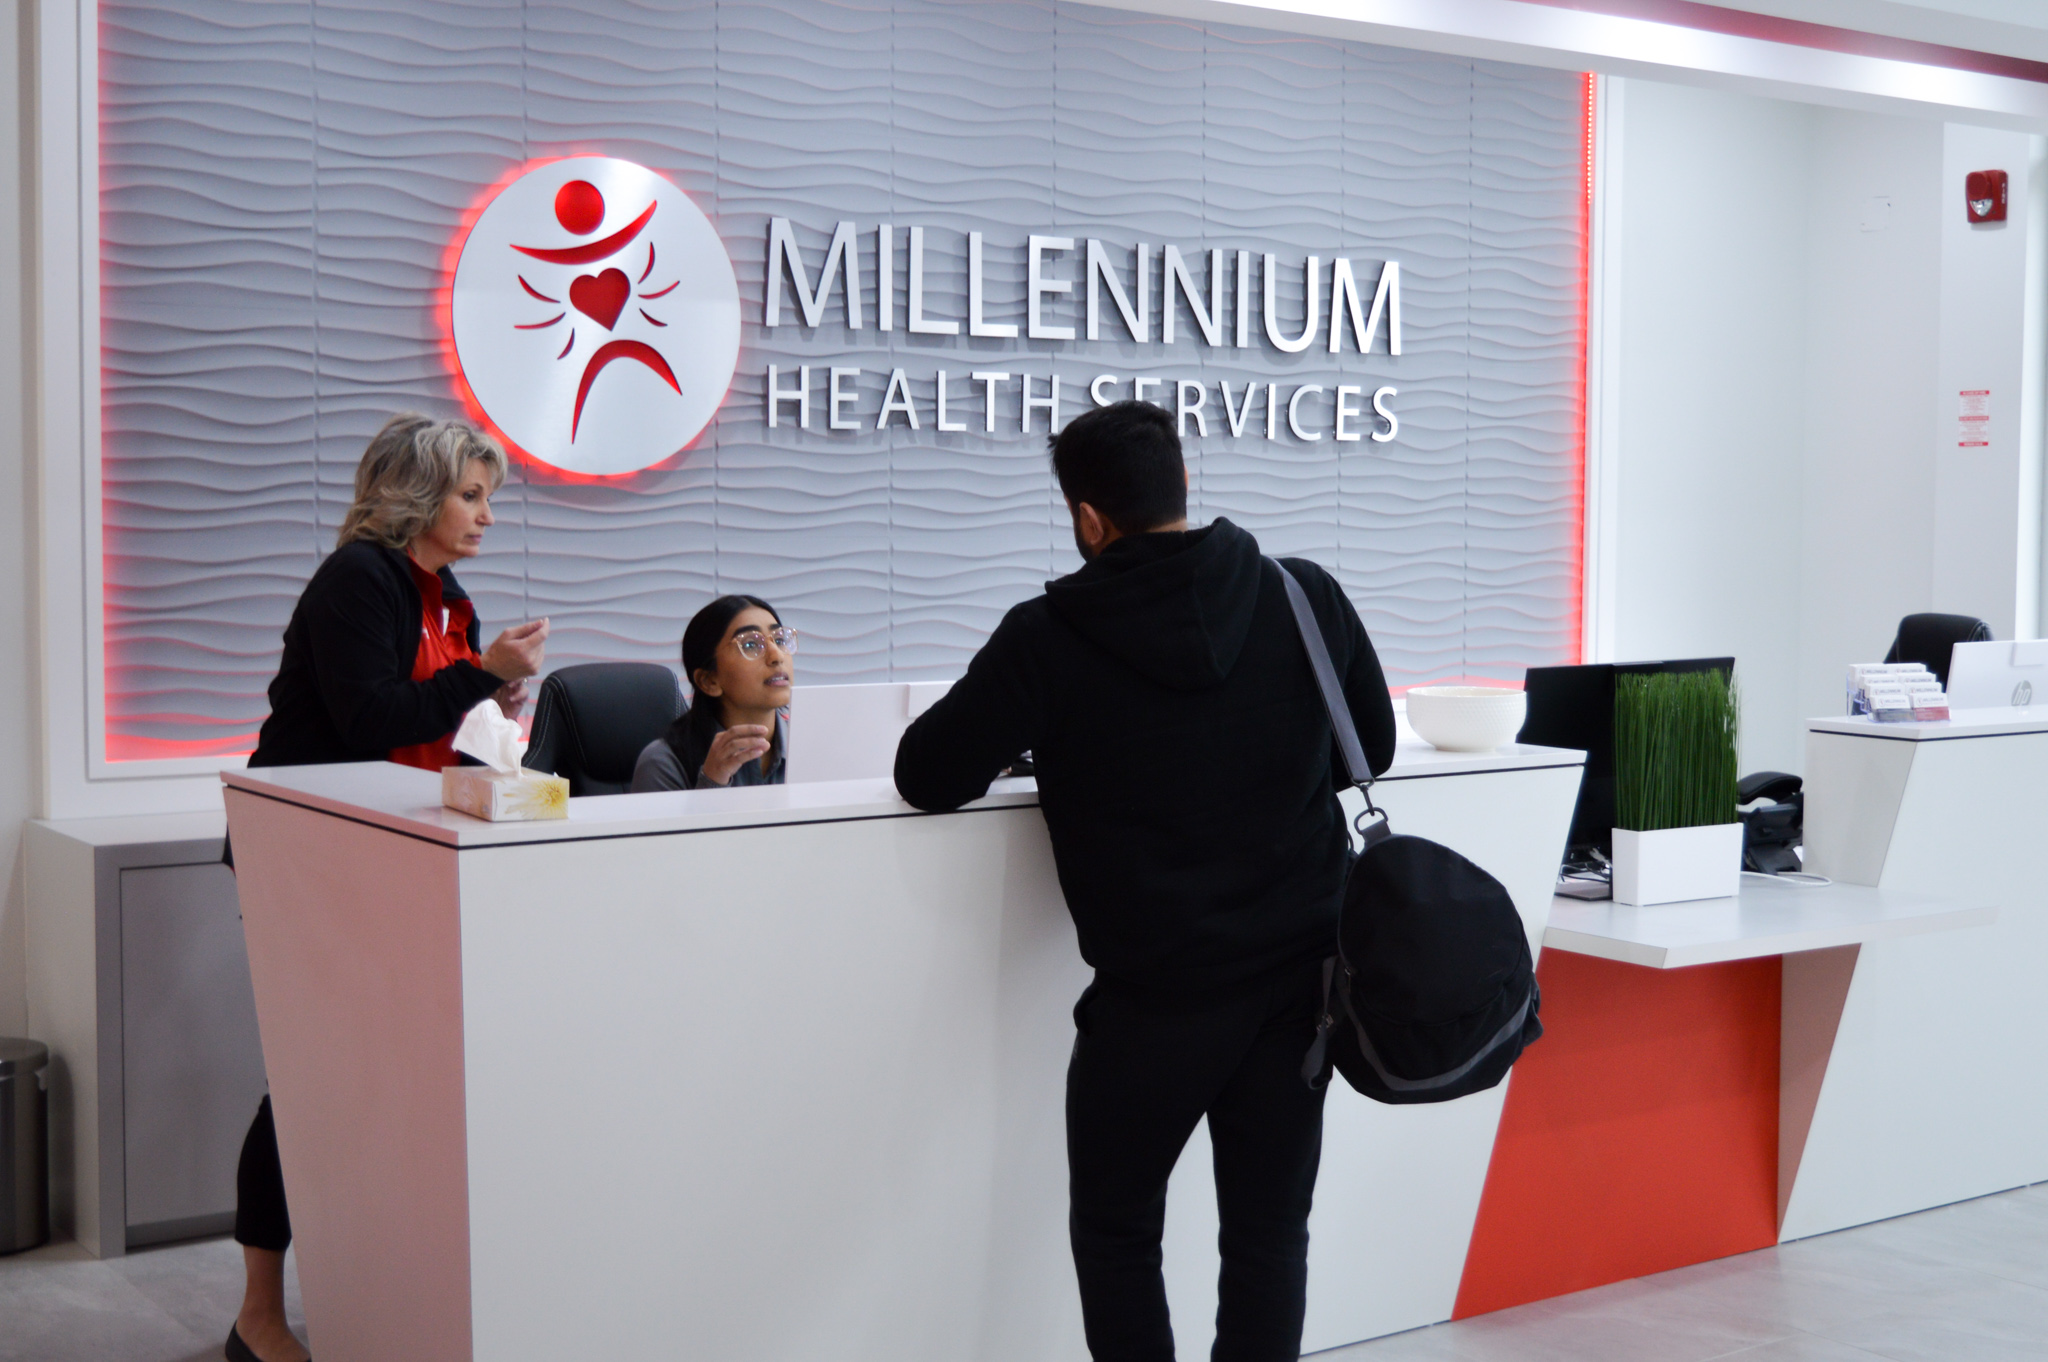 millennium health services reception